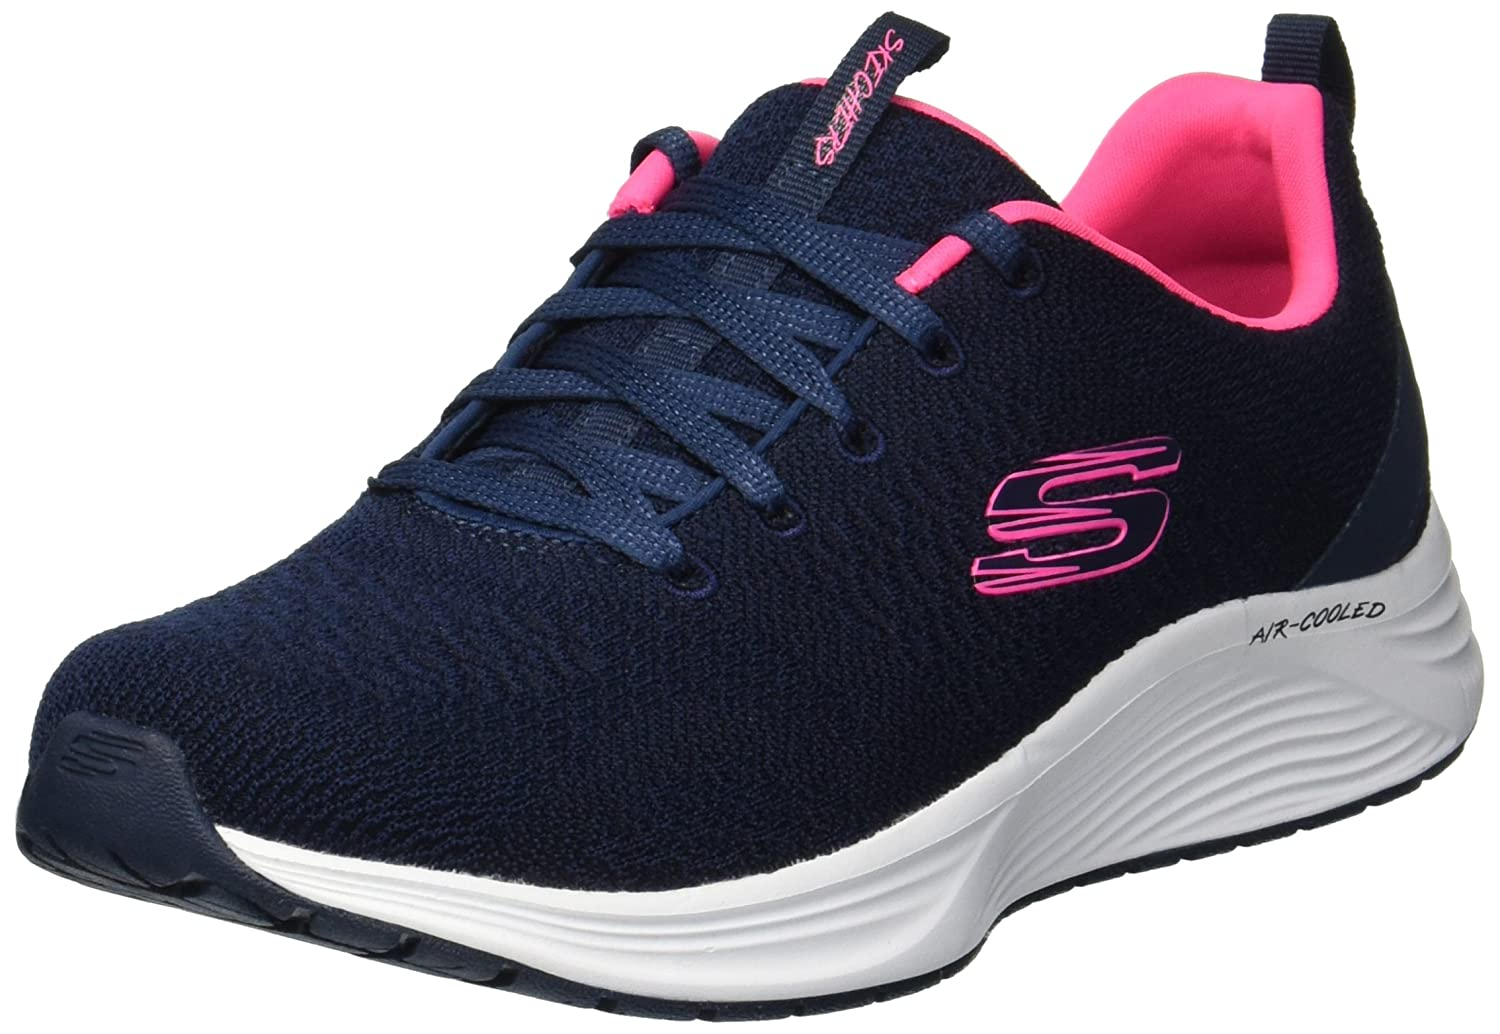 TALLA 40 EU. Skechers Women's Skyline Soft Knit Lace-Up Trainer Navy/Pink